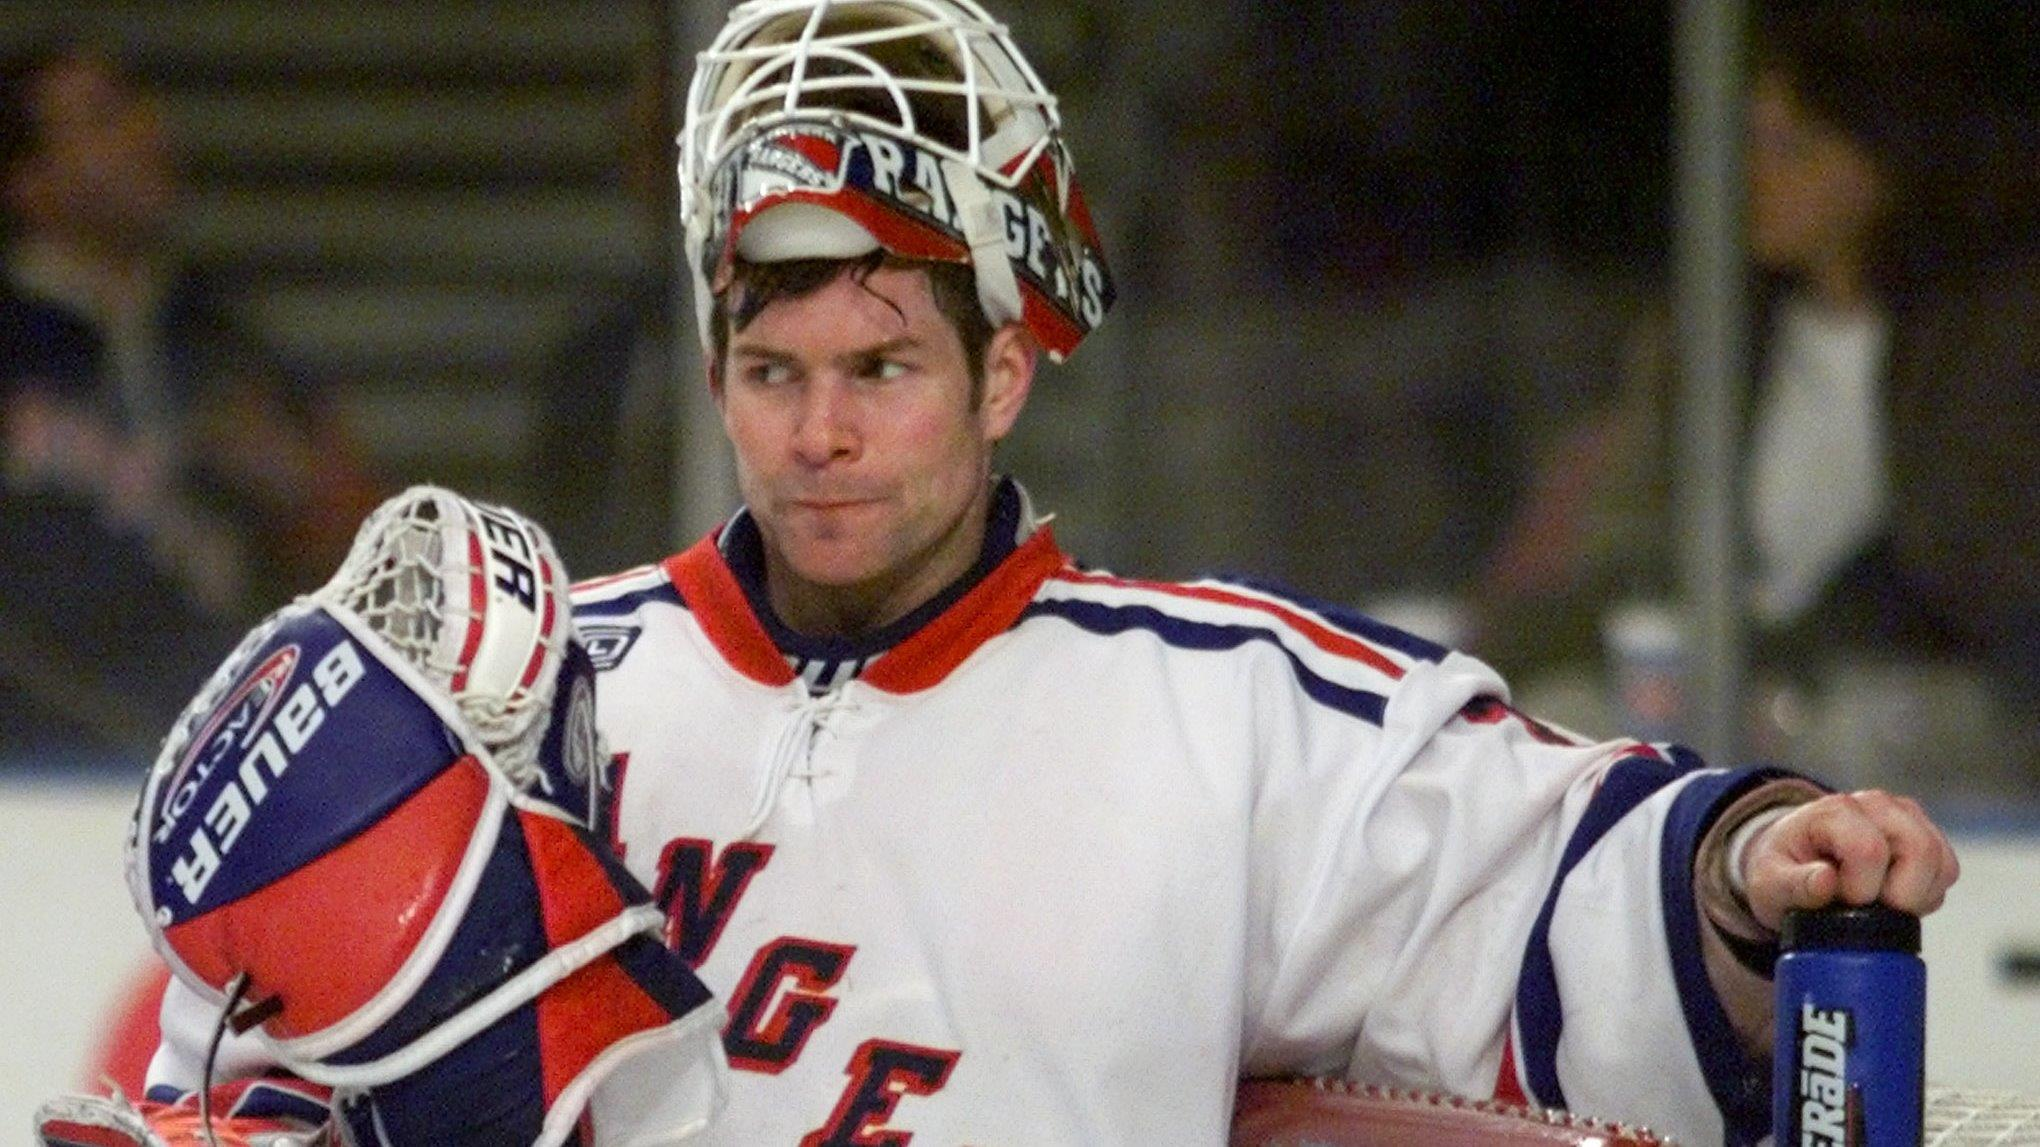 Former New York Rangers goalie Mike Richter on Jordan Spieth's collapse at the Masters, his charity for pediatric cancer and Hillary Clinton's subway swipe.